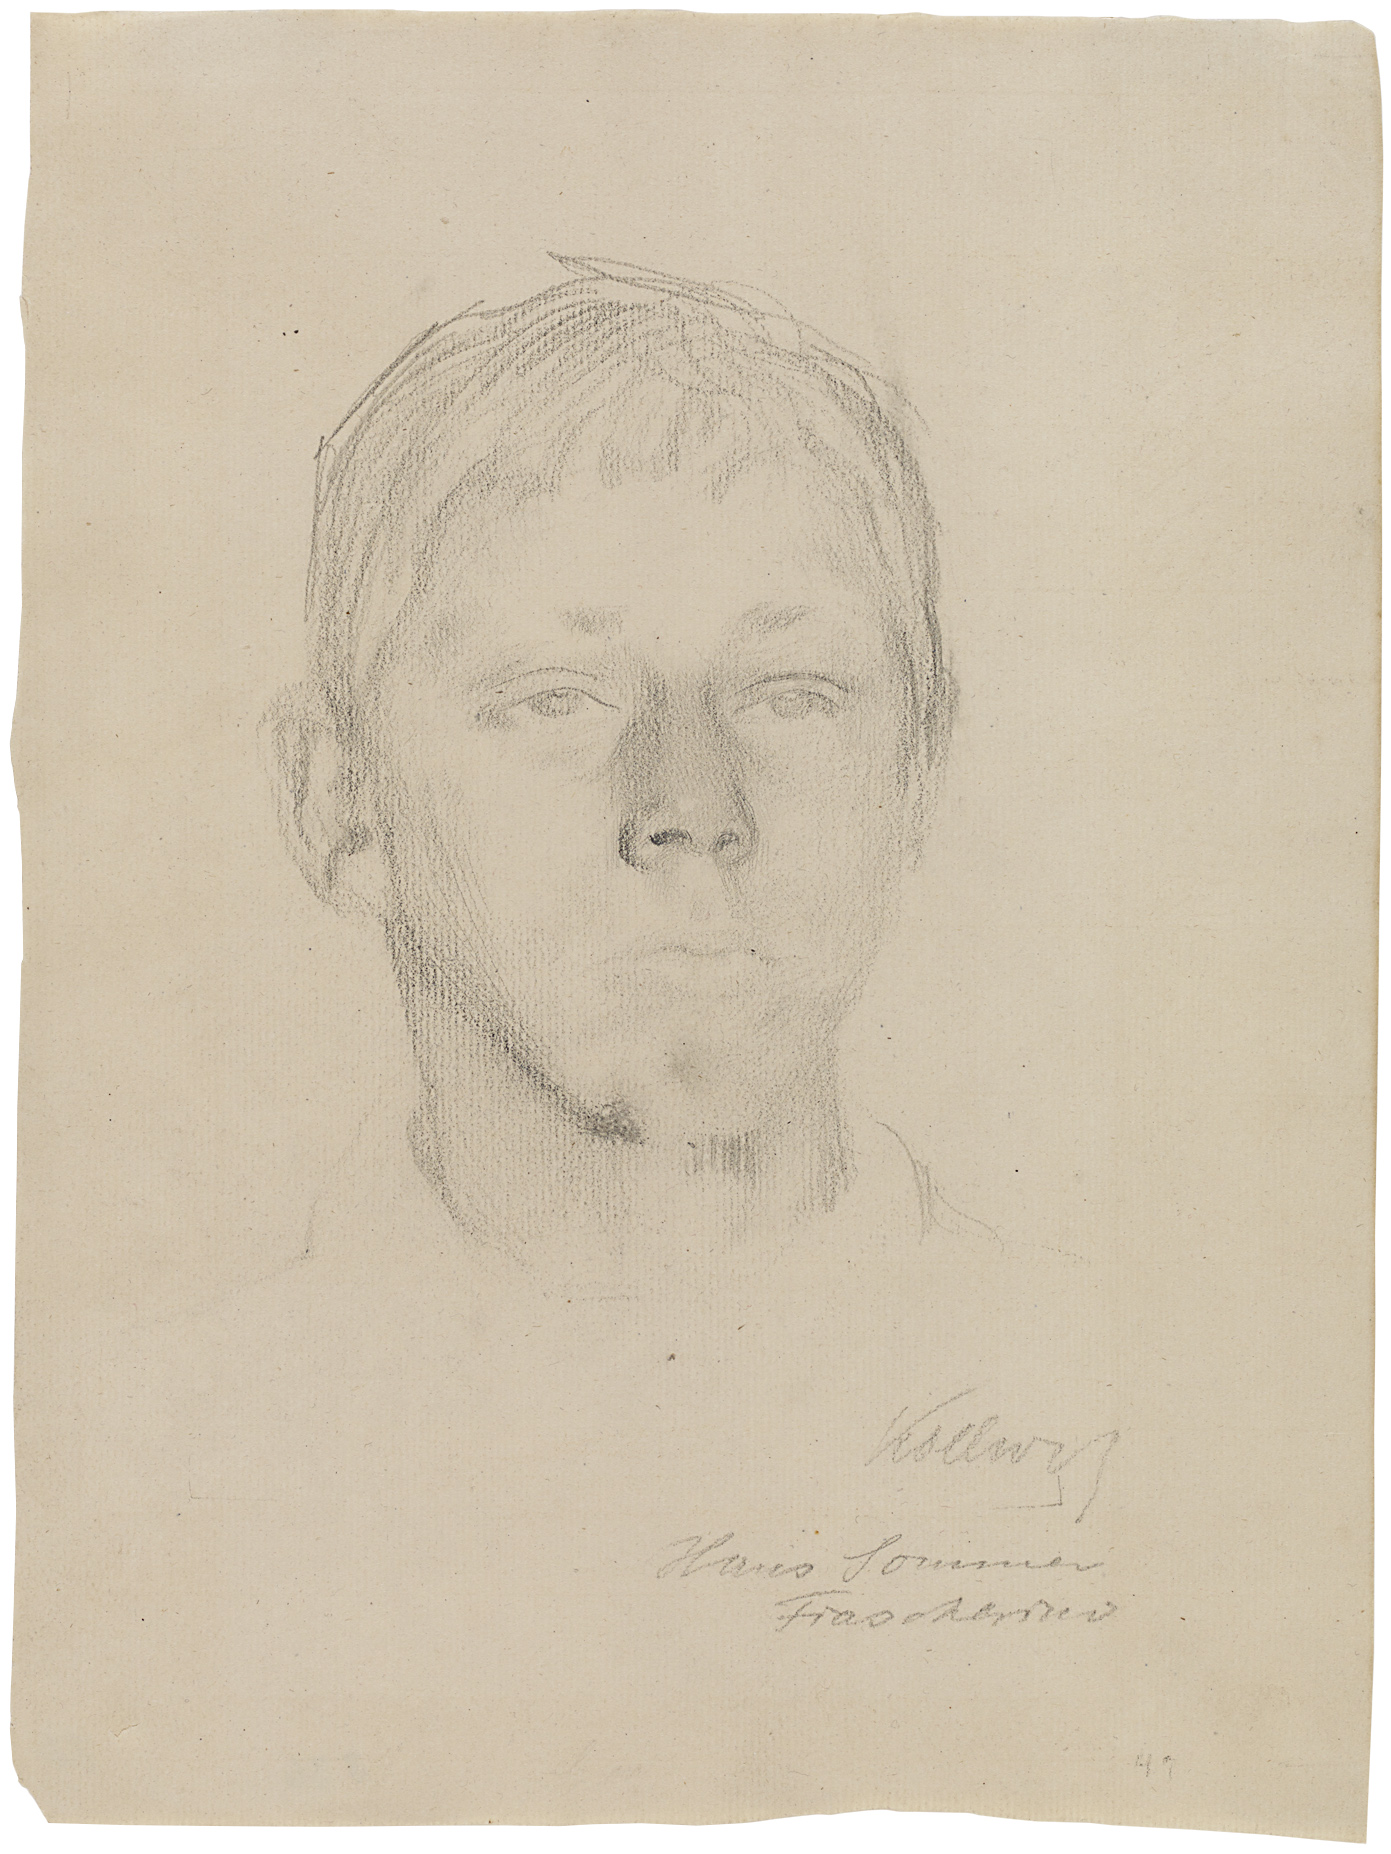 Käthe Kollwitz, Hans, Summer in Fiascherino, July 1907, pencil on paper, NT 424, Cologne Kollwitz Collection © Käthe Kollwitz Museum Köln